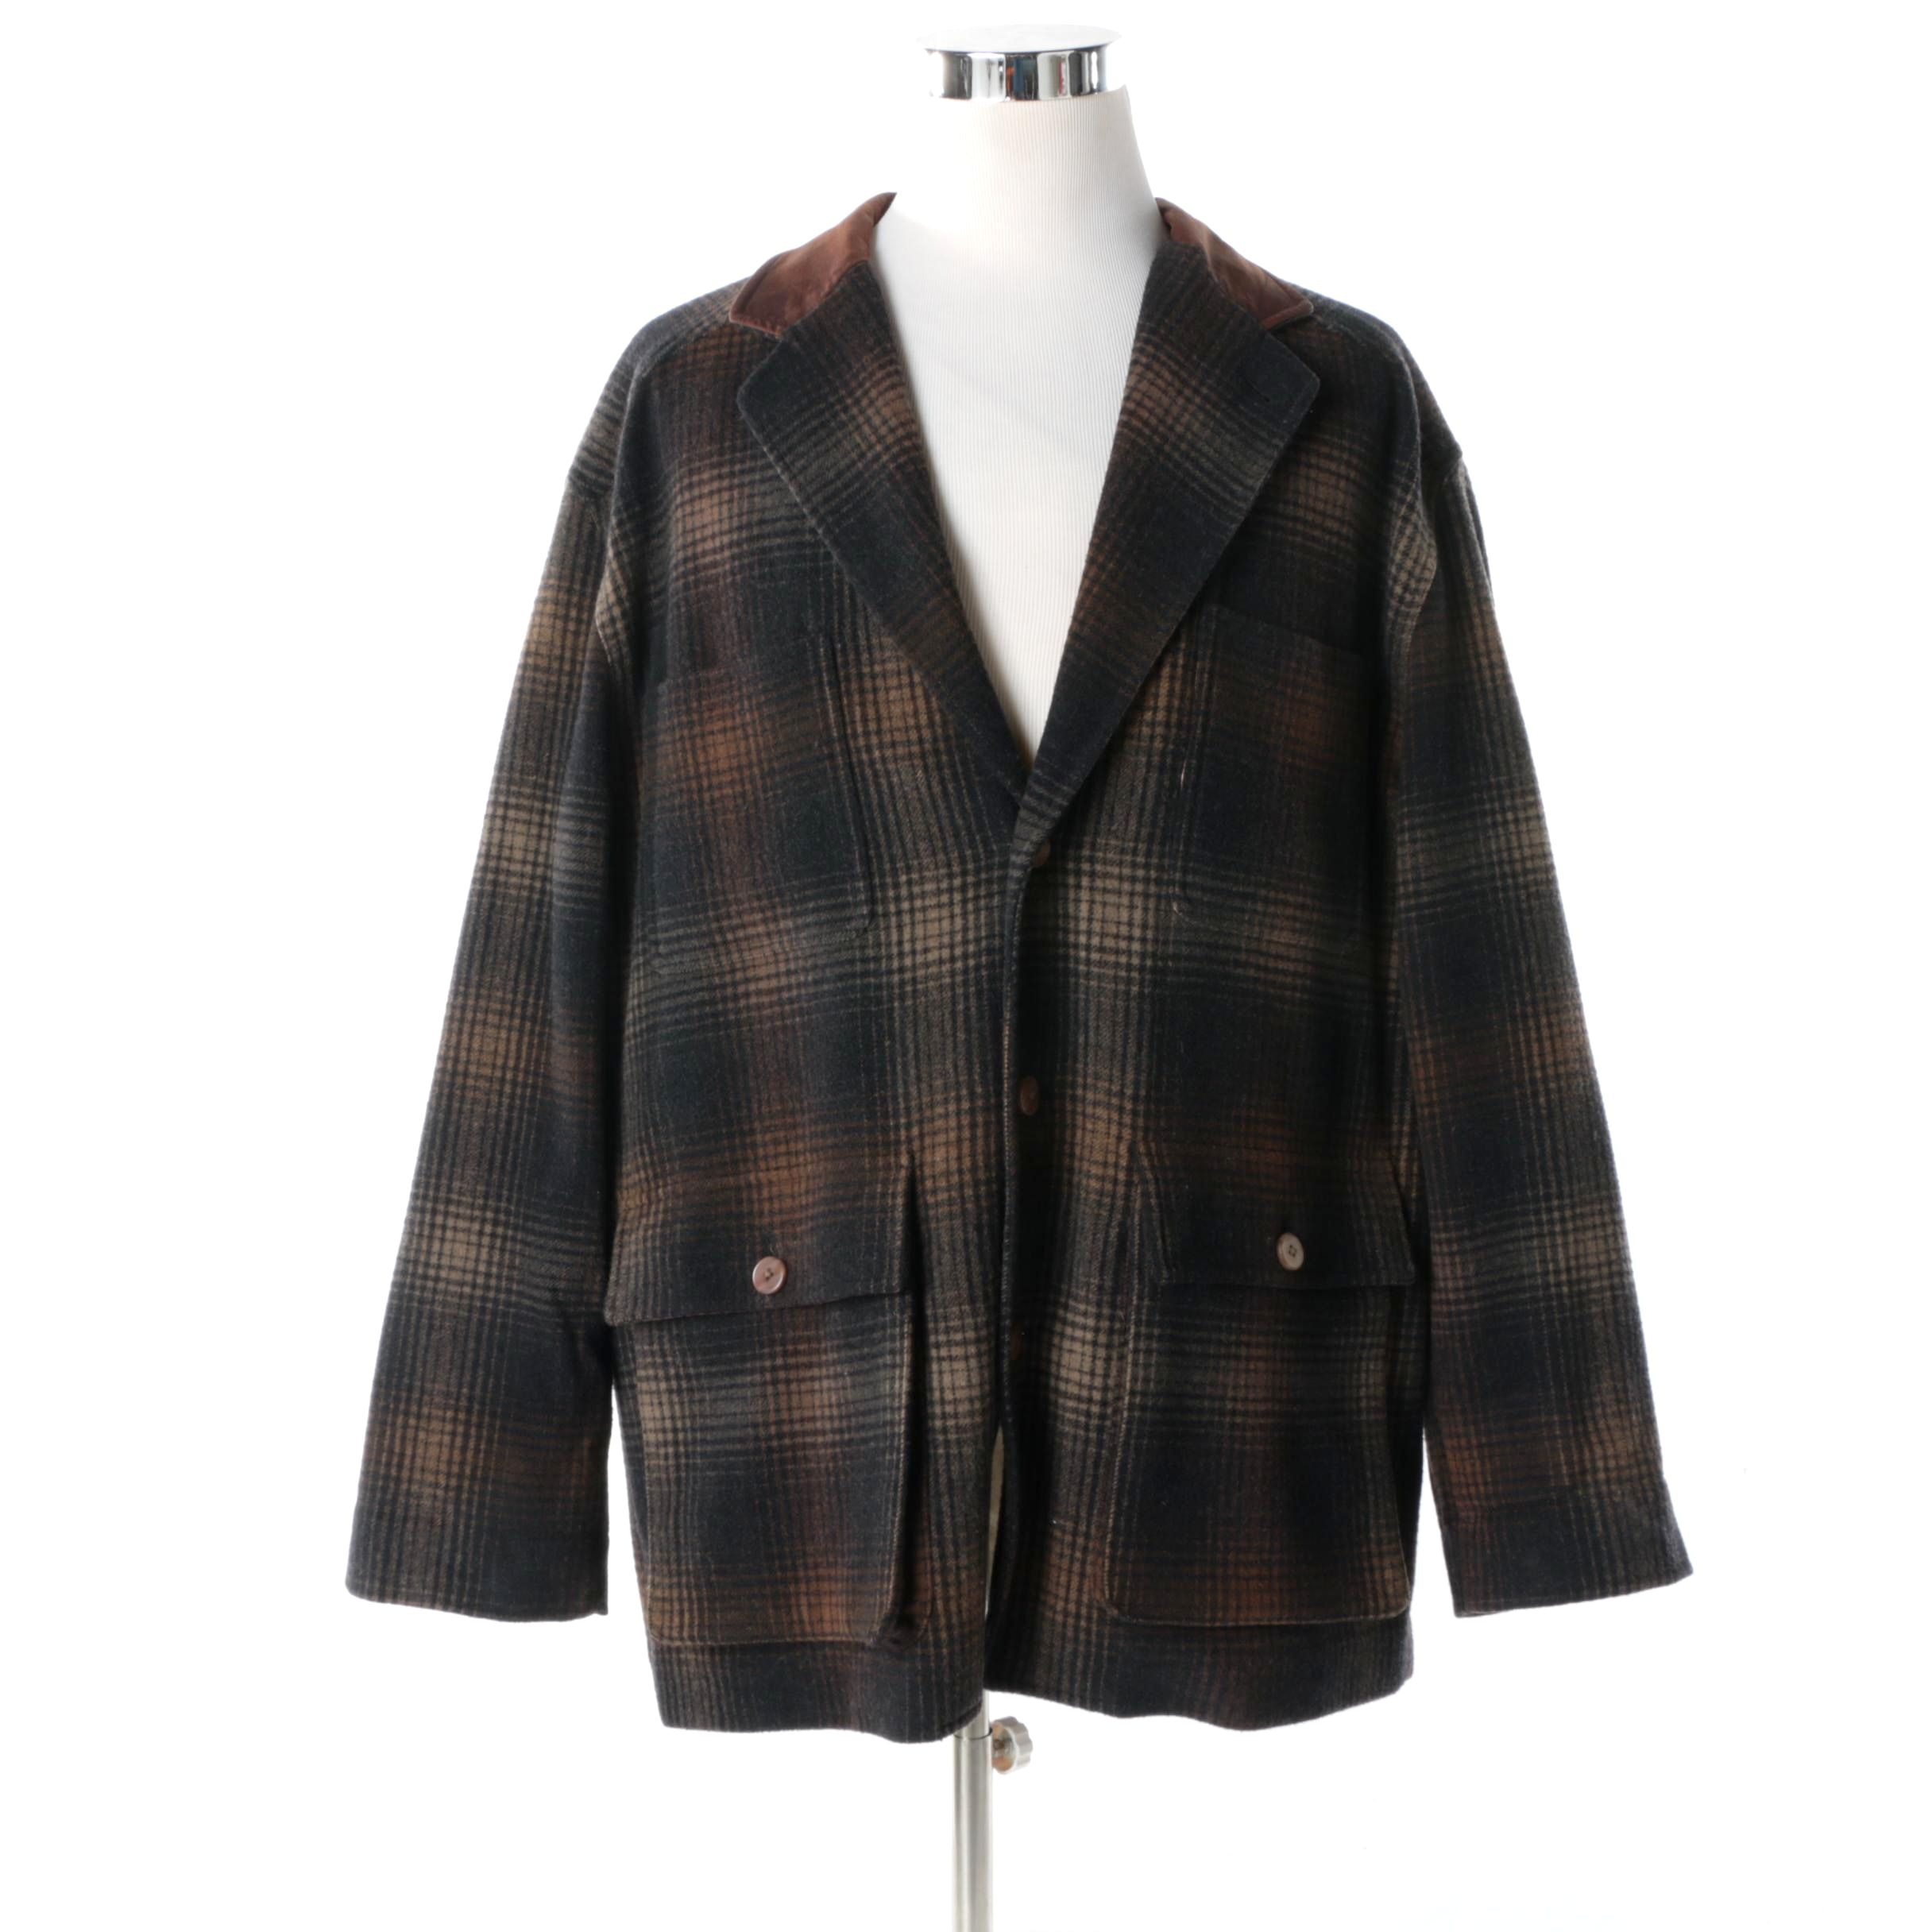 J.O.E. by Joseph Abboud Lambswool Jacket in Brown and Black Plaid